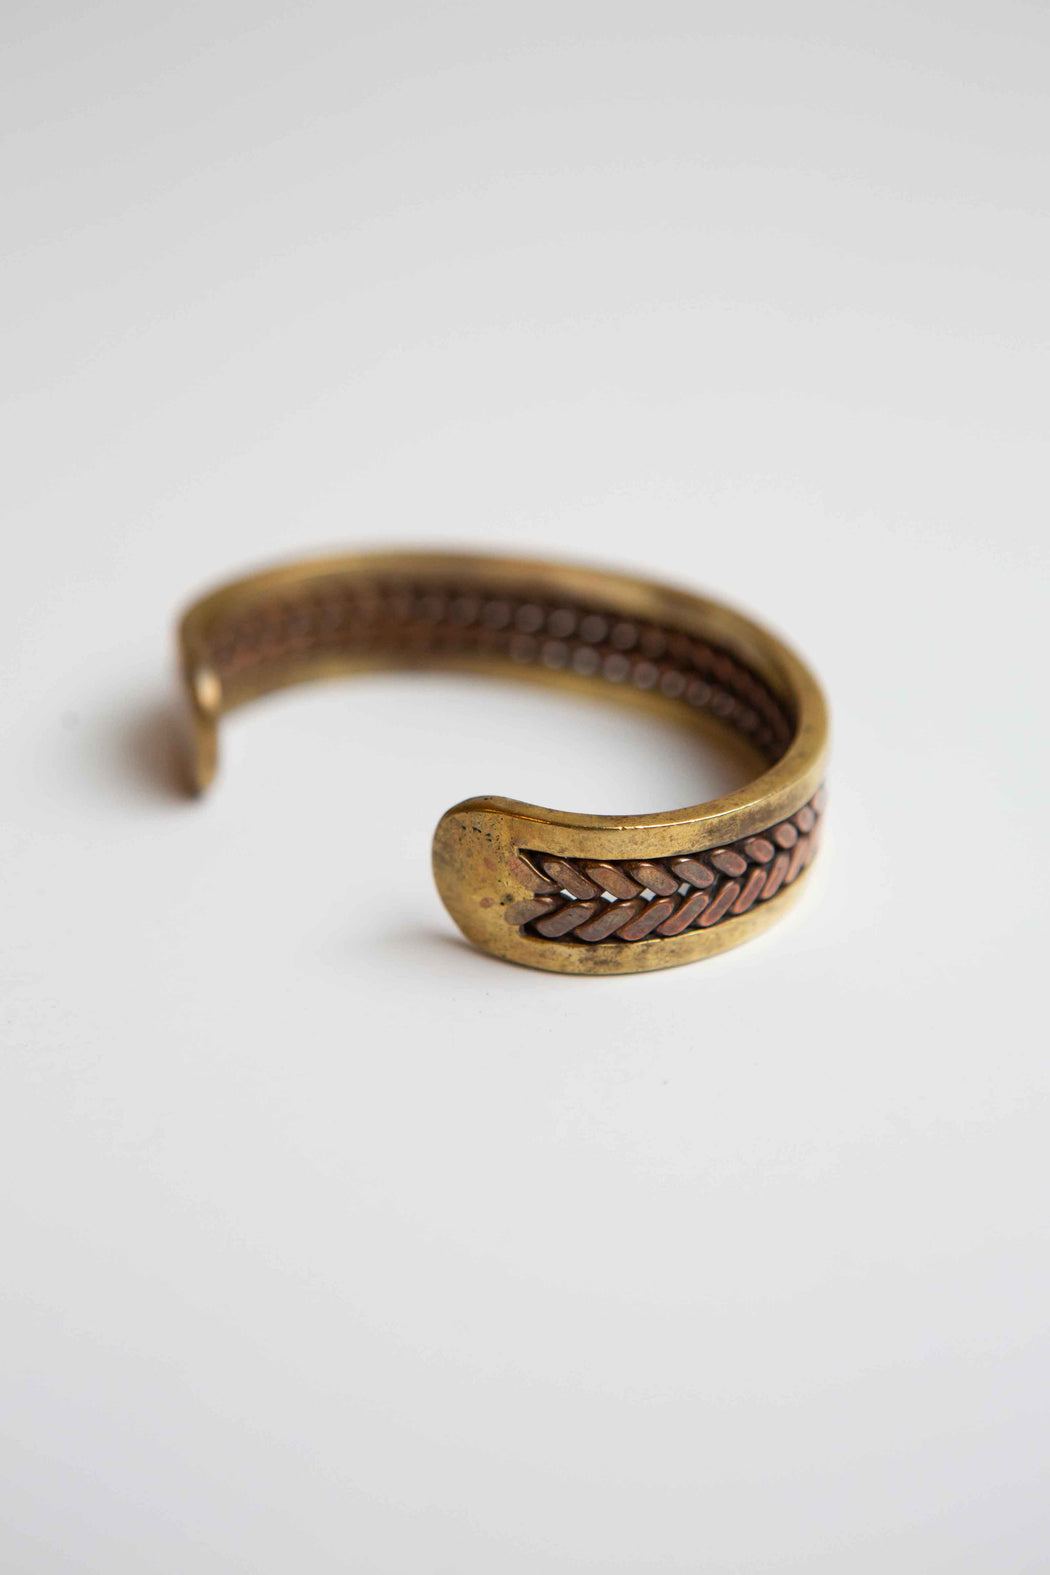 Vintage woven brass and copper bracelet